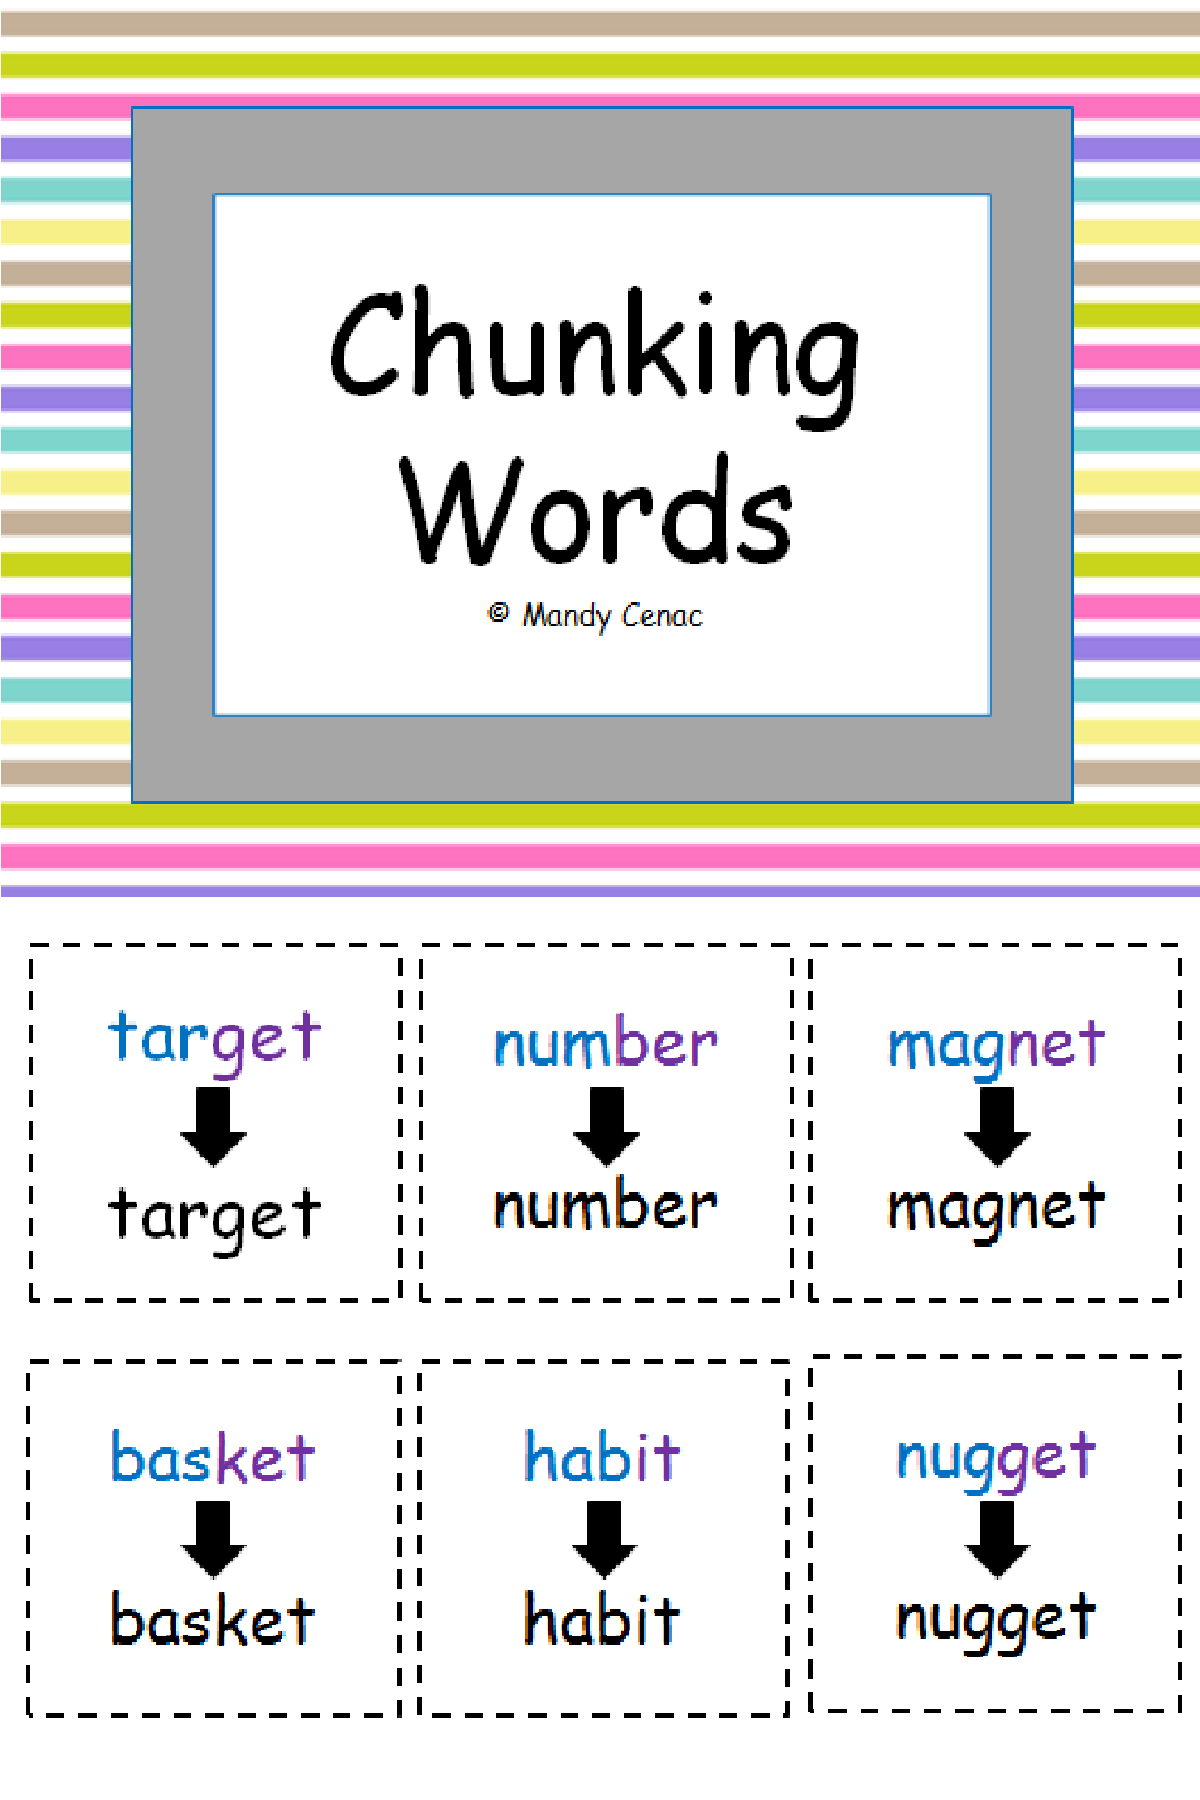 Chunking Words